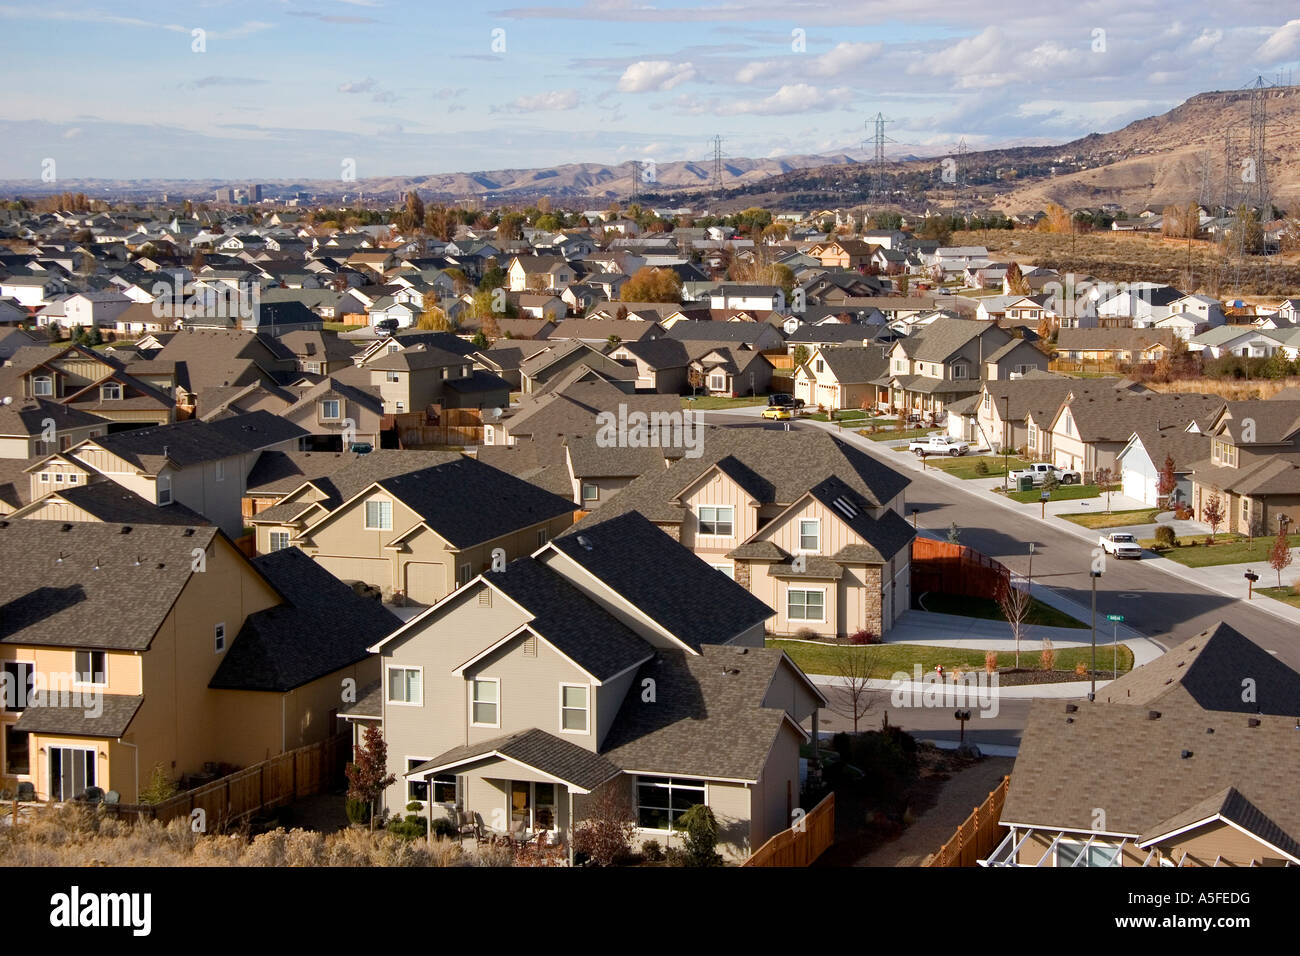 Housing developments contribute to urban sprawl in Boise IdahoStock Photo